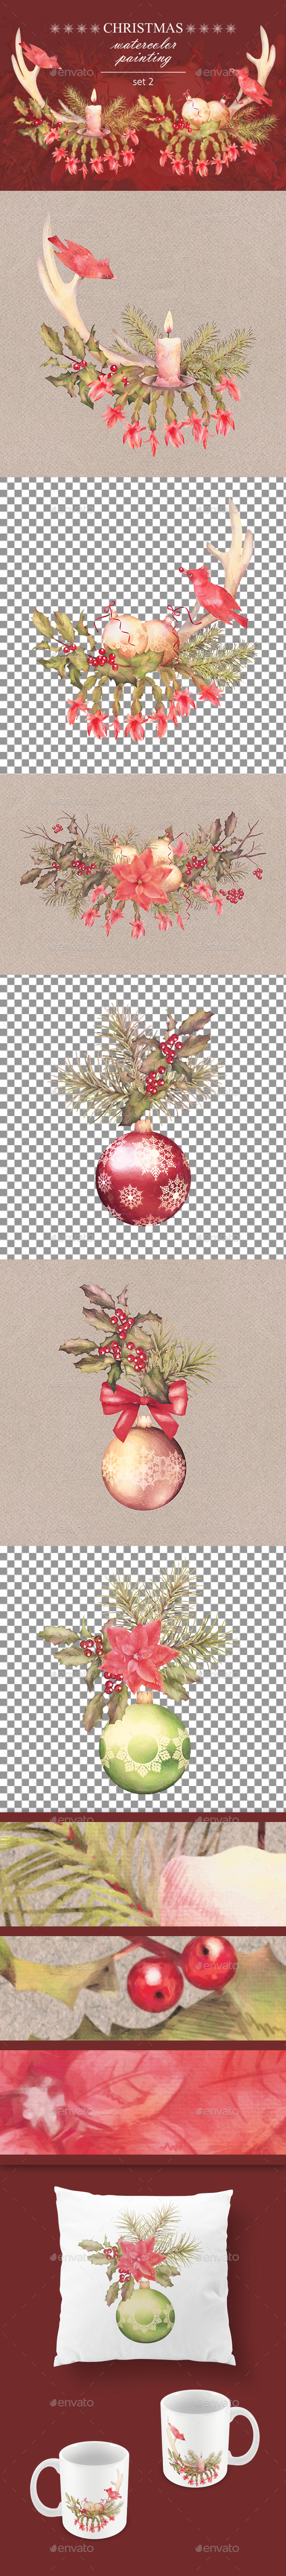 Watercolor Christmas Set - Objects Illustrations